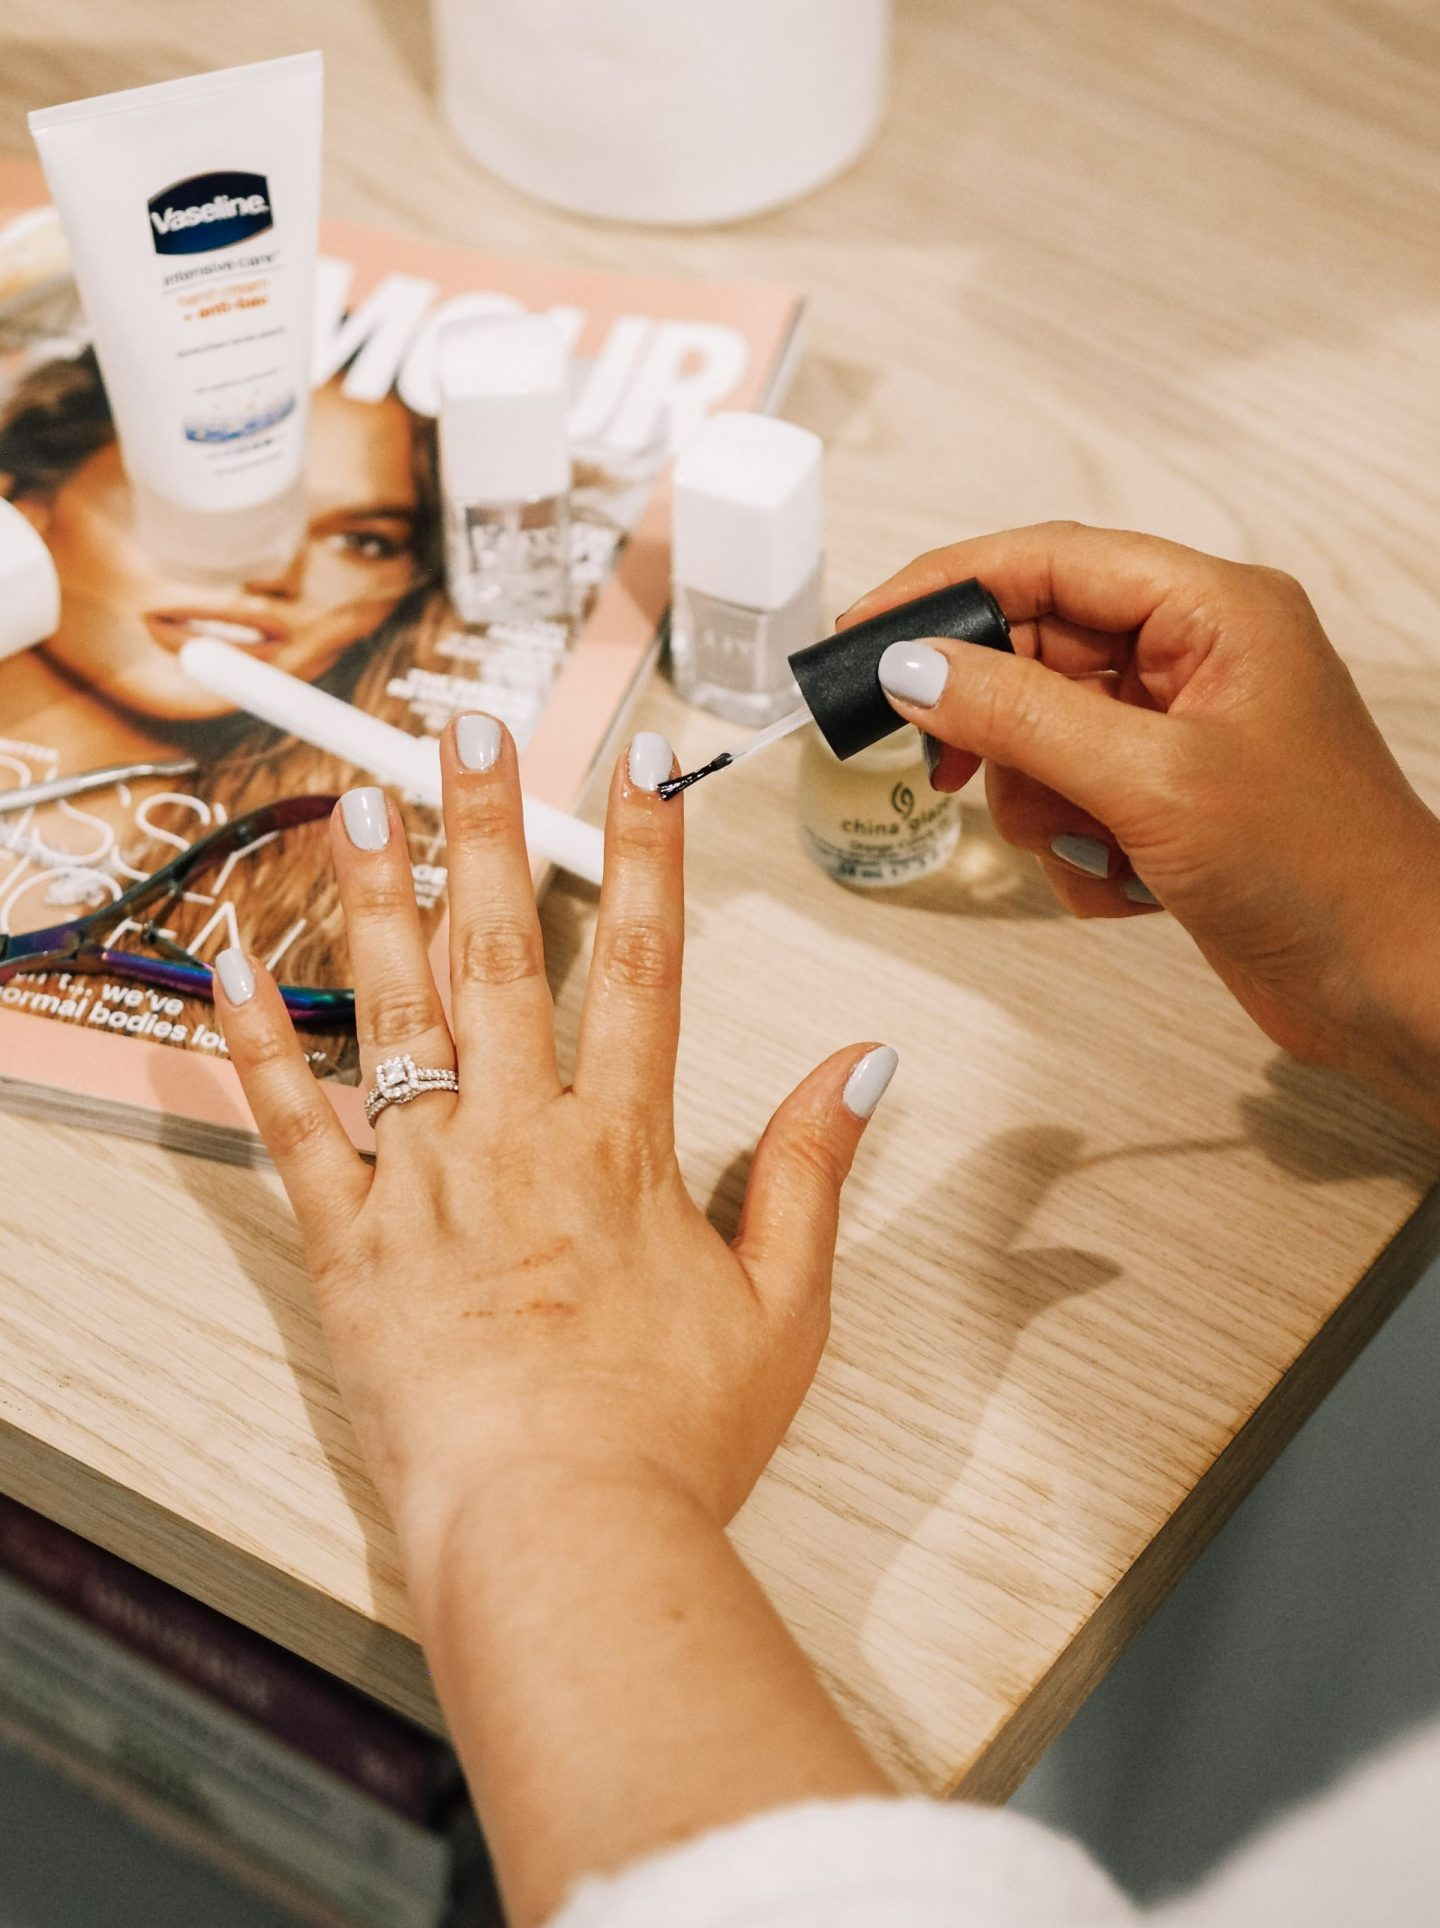 Polished To Perfection: Top Five Pro Tips For The Perfect At-Home Manicure